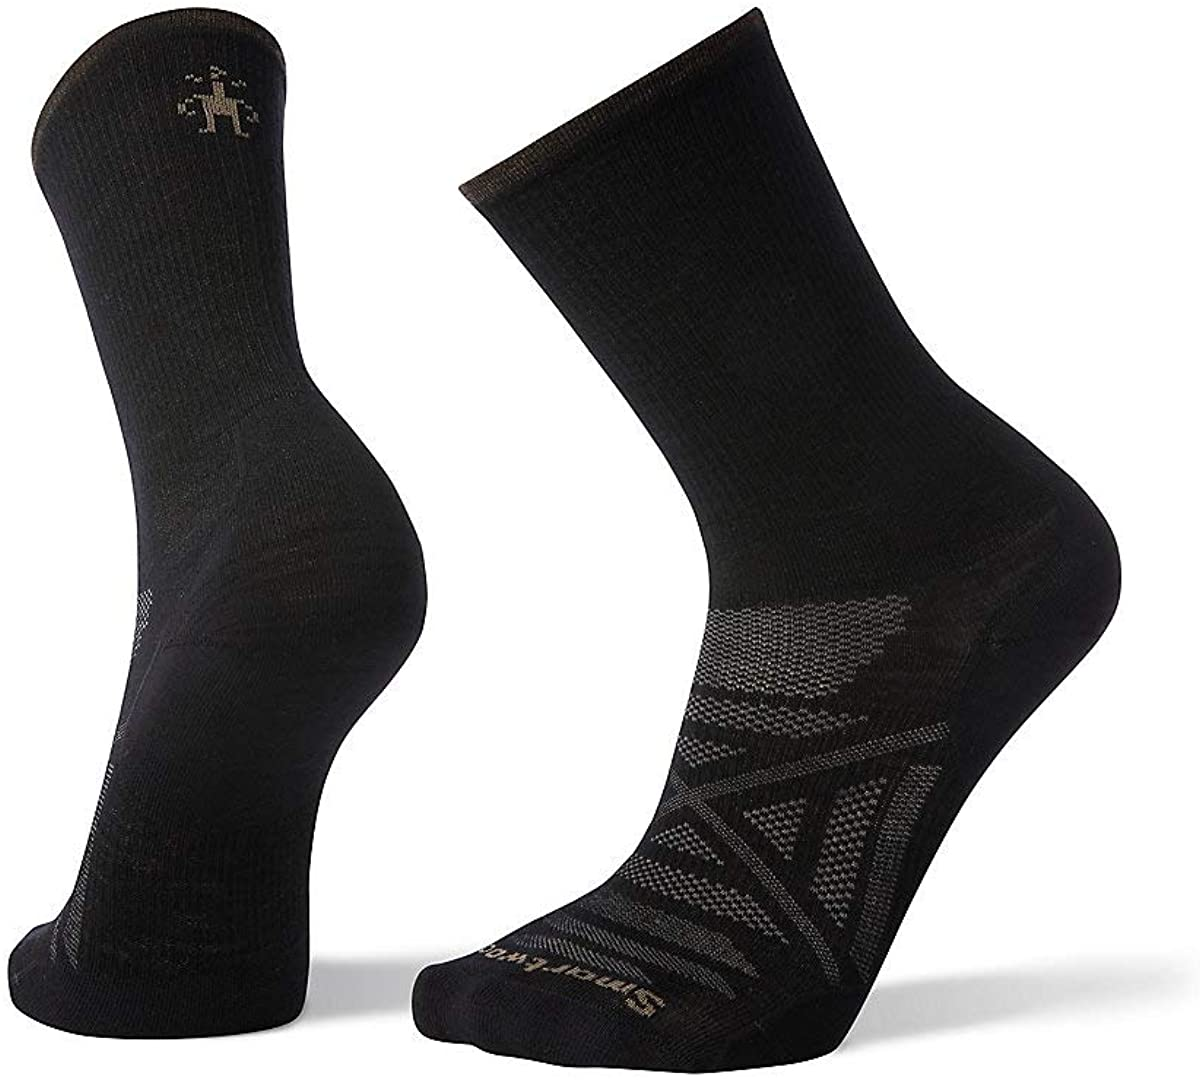 Unisex Smartwool PhD Outdoor Ultra Light Crew Hiking Socks in Black from the front